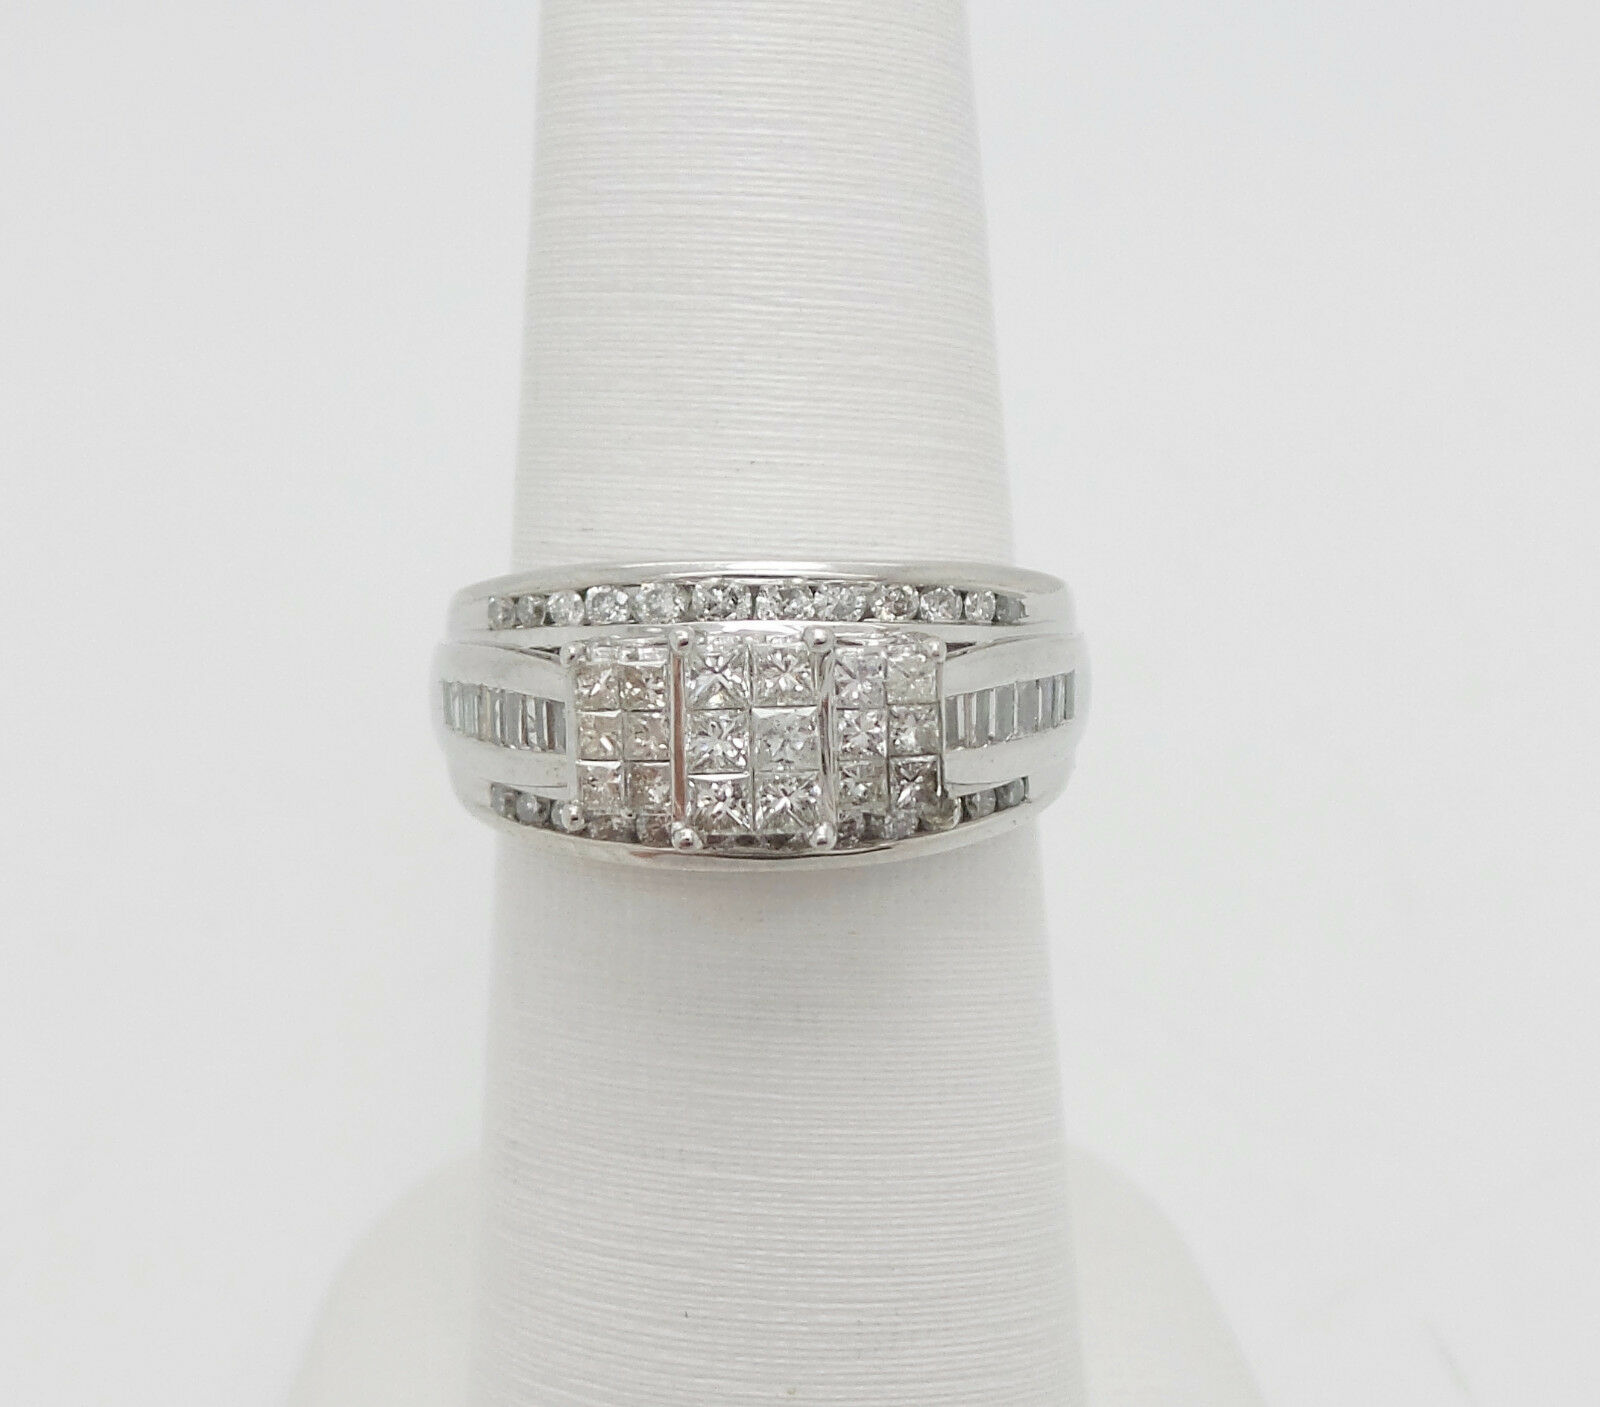 Zales 1CT Princess Cut Diamond Engagement Wedding Bridal Ring 14K White gold